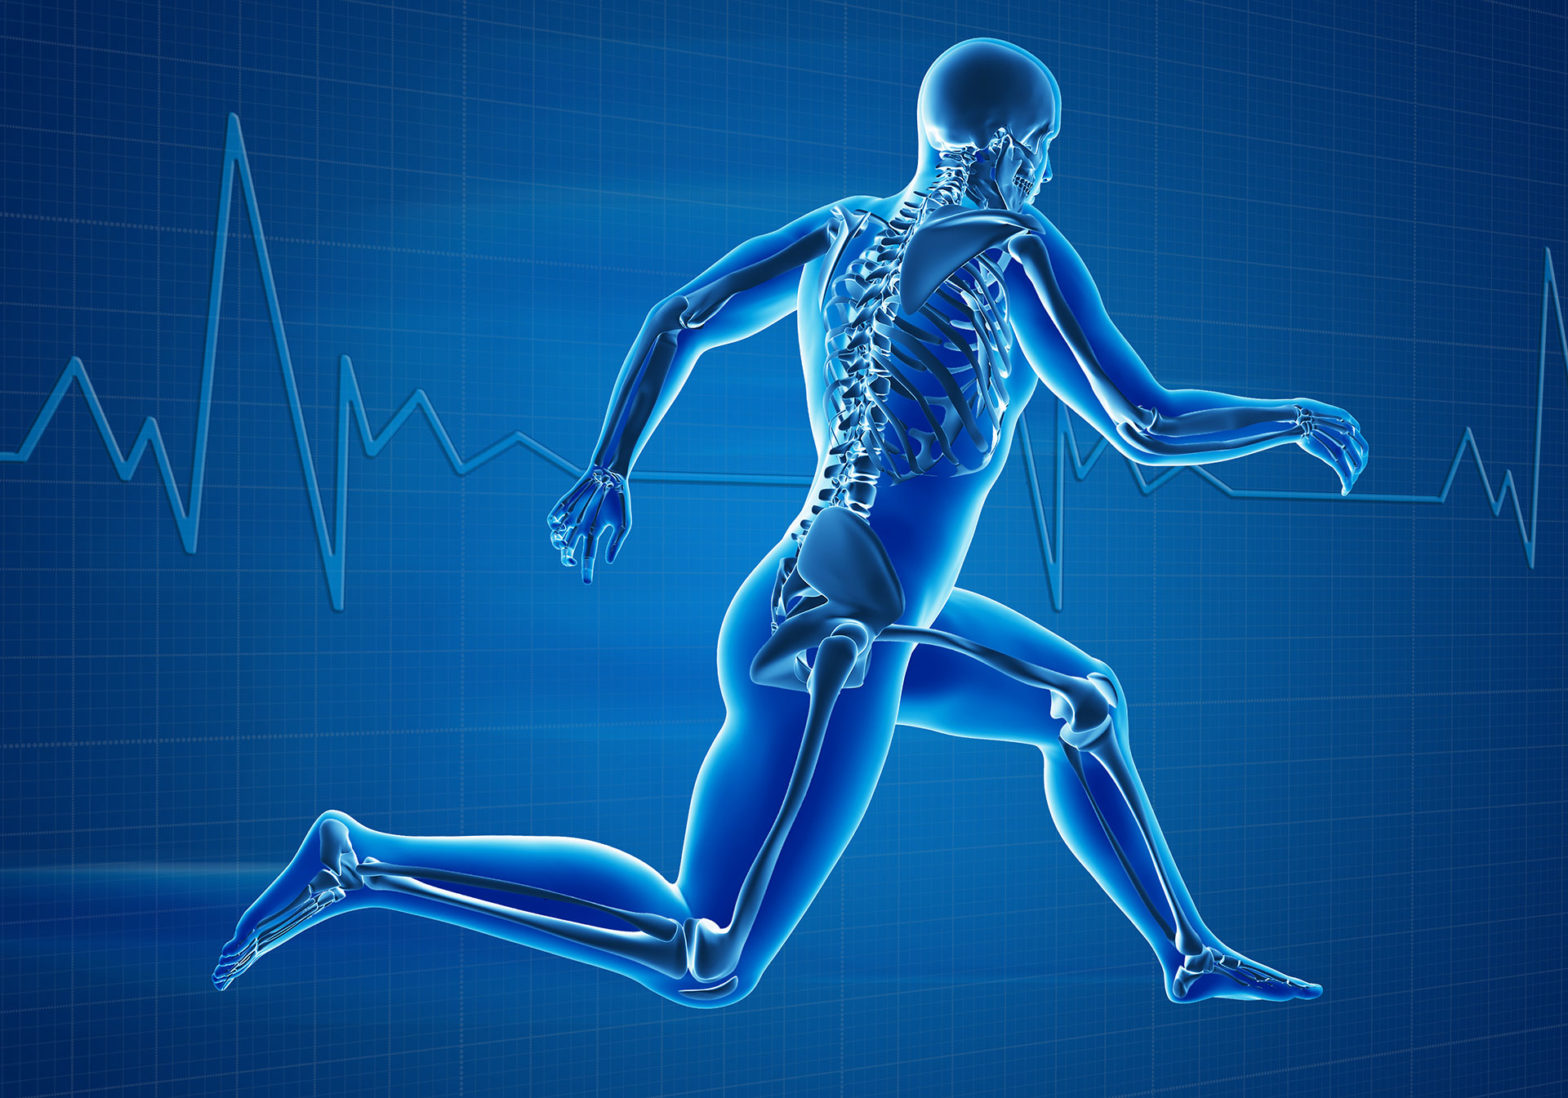 Graphic of skeleton running, with heartbeat line